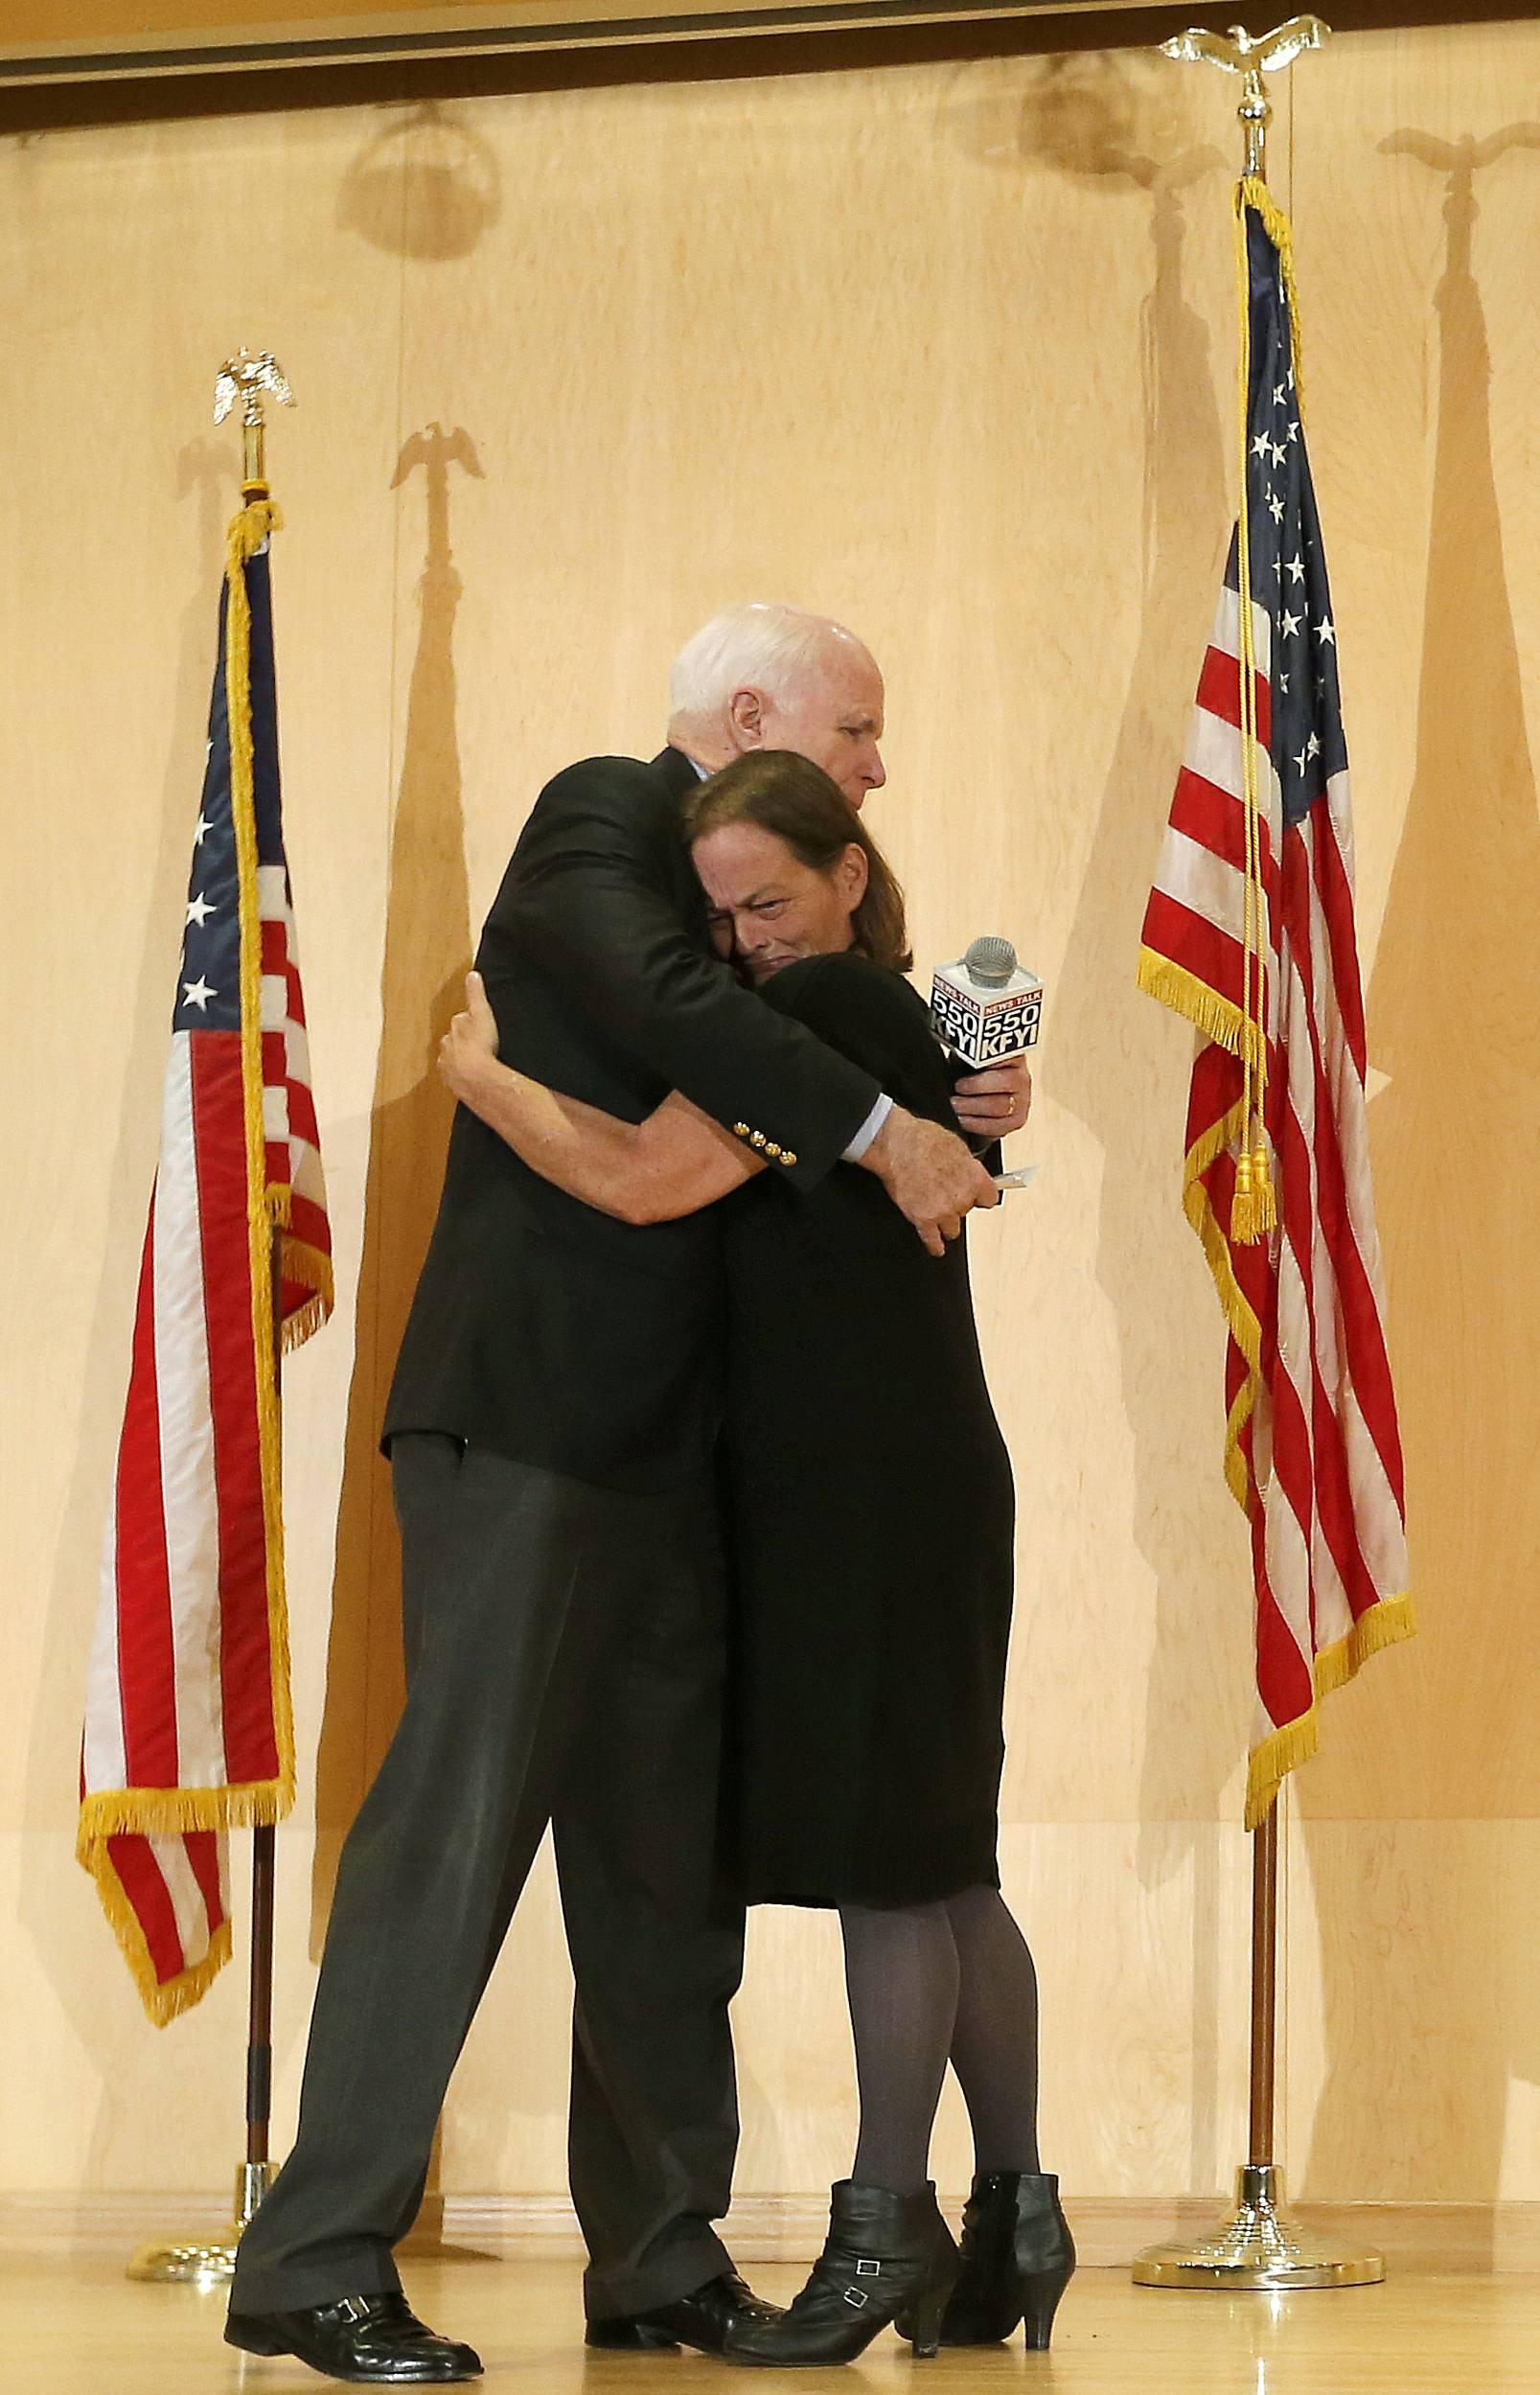 Sen. John McCain embraces Gabriel Basso after she shared how her veteran husband died during a forum with veterans on Friday, May 9, in Phoenix. McCain was discussing lapses in care at the Phoenix Veterans Affairs hospital that prompted a national review of operations around the country.